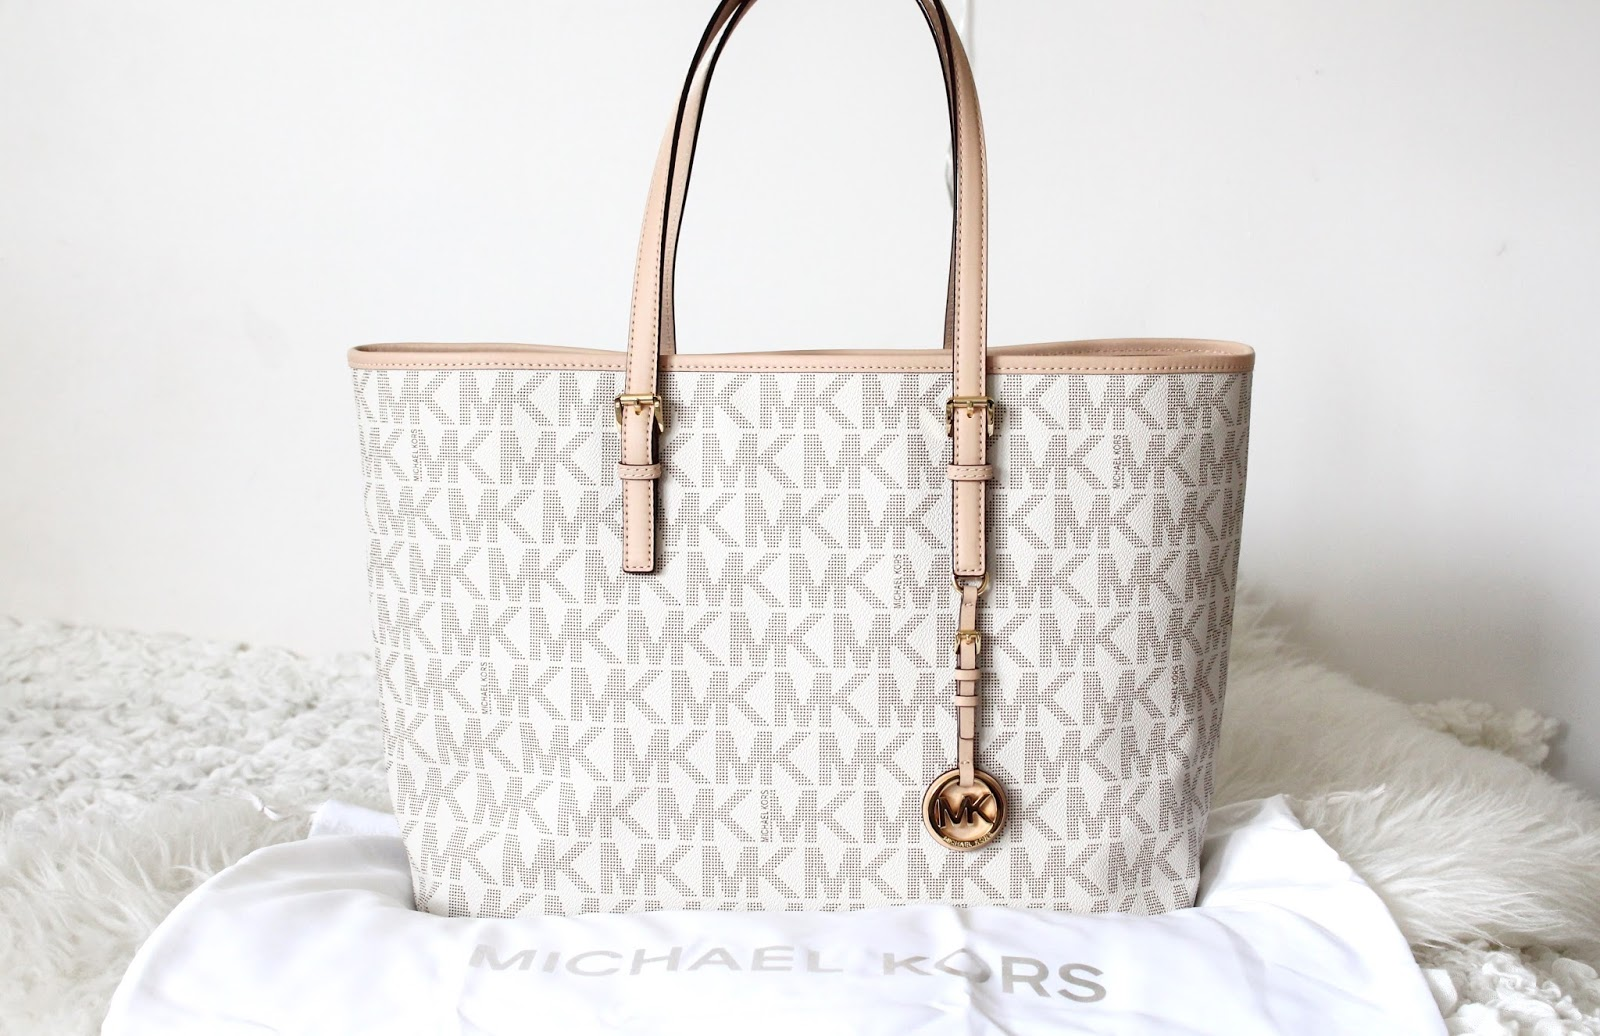 Michael Kors Aito Laukku : Emmi s wardrobe michael kors jet set multifunction travel